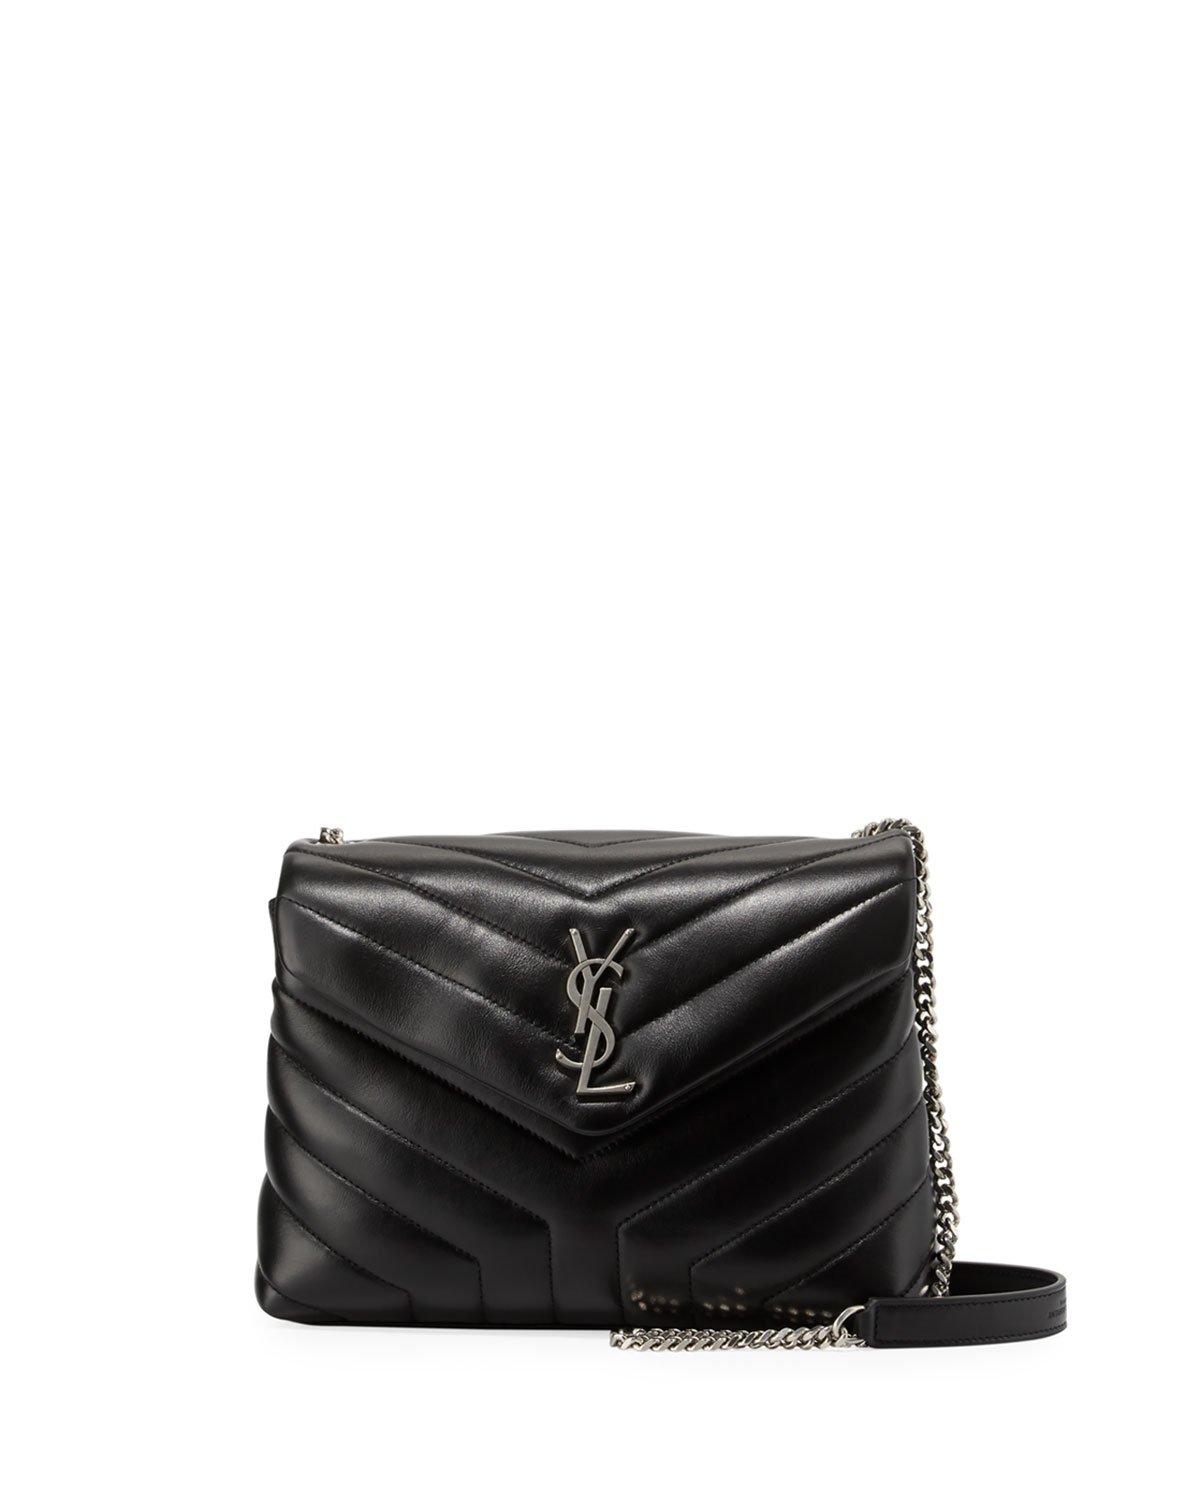 Saint Laurent Loulou Monogram Small Y-Quilted Leather Chain Bag ... 4806ef4bb9d98